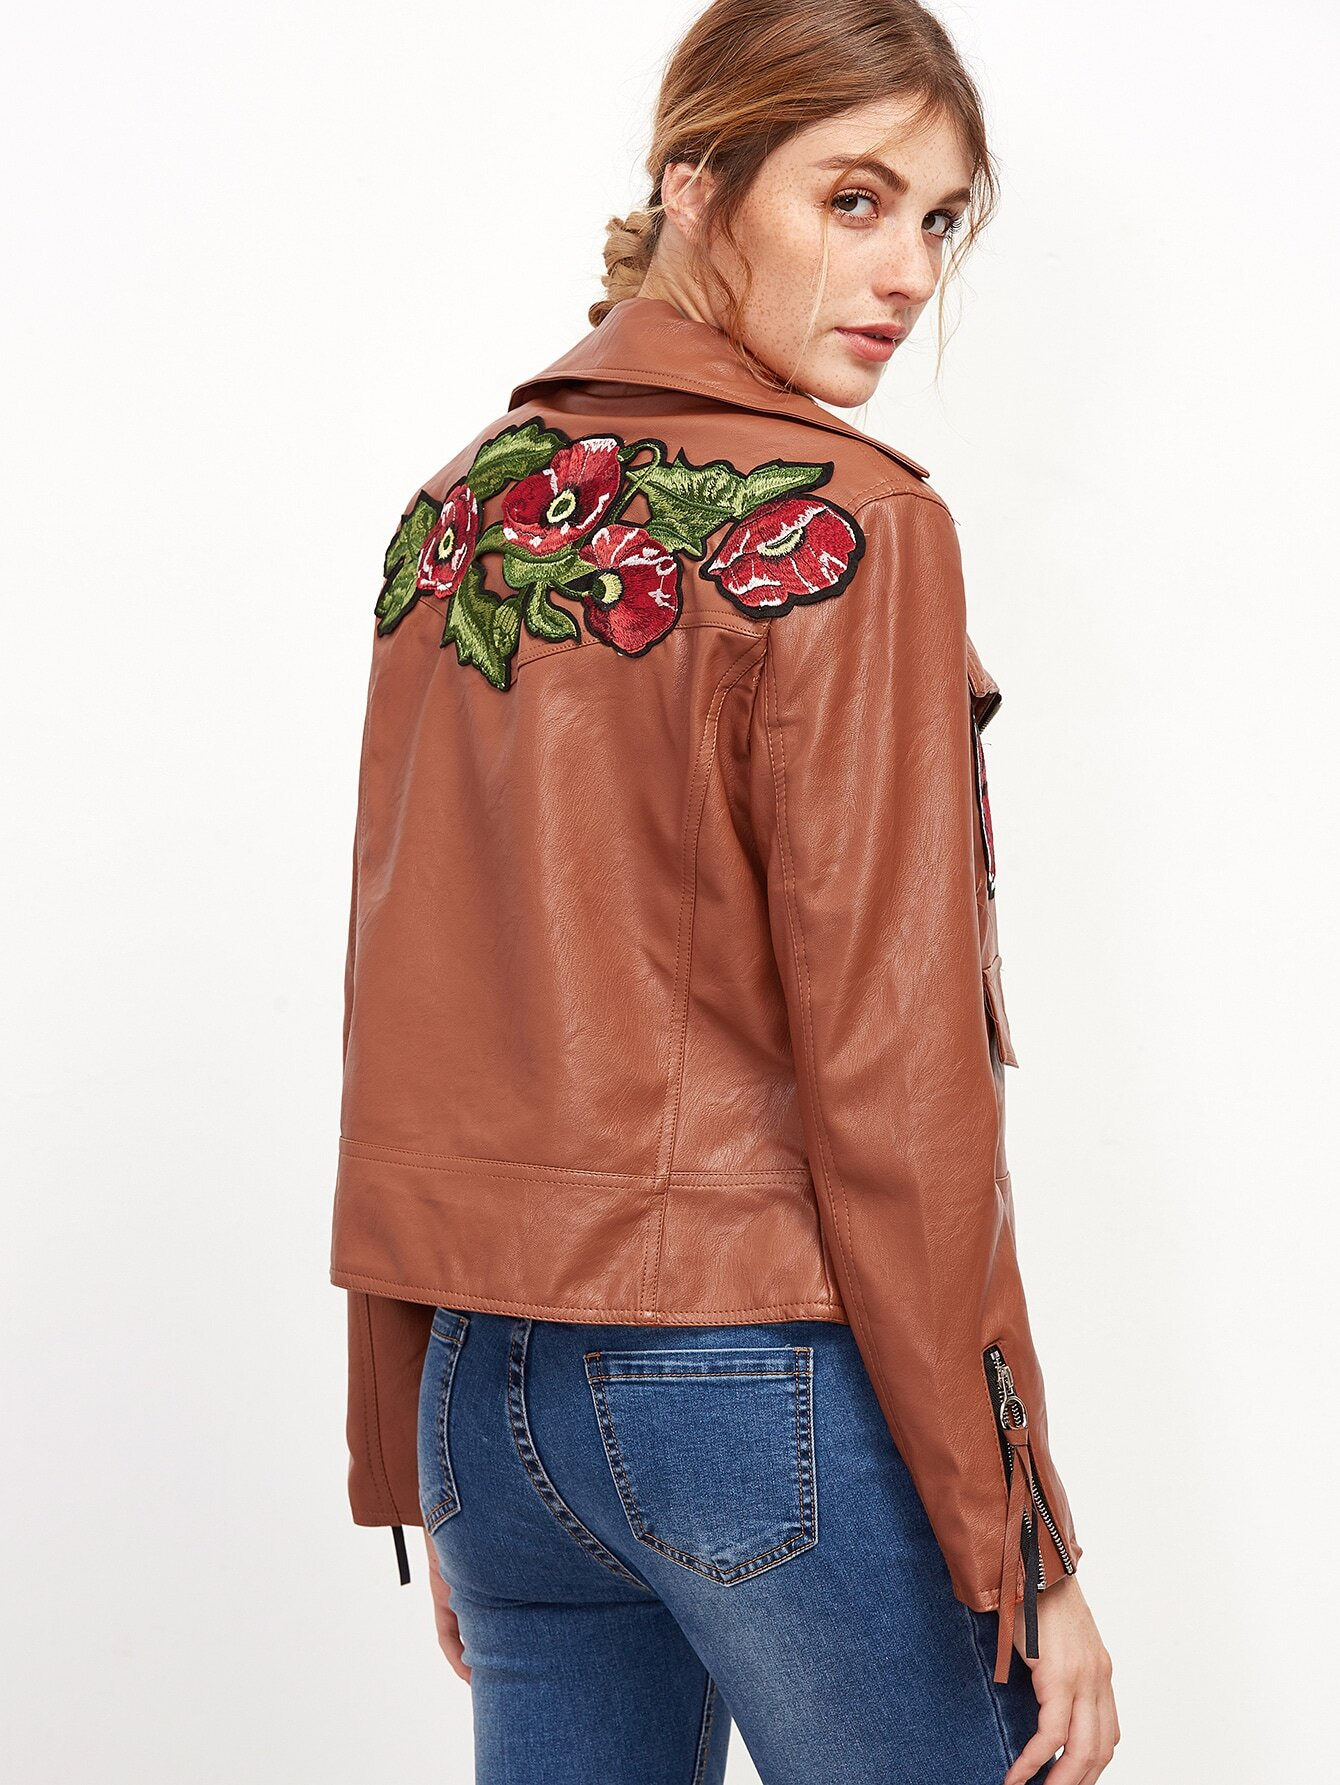 Light Brown Butterfly Embroidery PU Jacket With ZipperLight Brown Butterfly Embroidery PU Jacket With Zipper<br><br>color: Brown<br>size: S